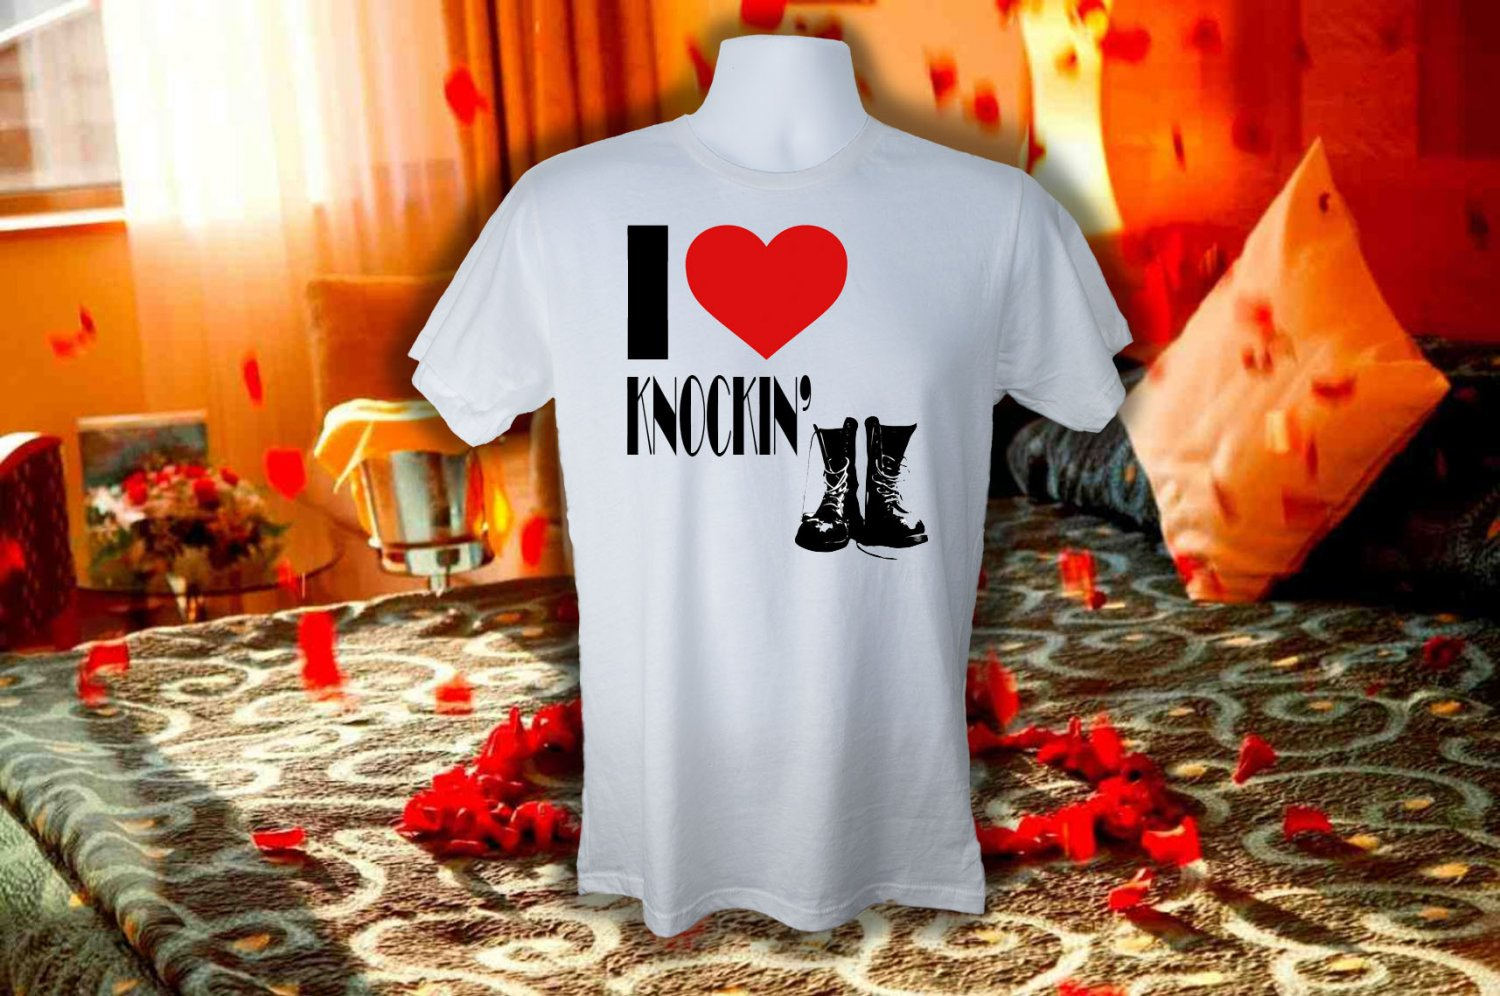 I LOVE KNOCKIN BOOTS T SHIRT 3XL